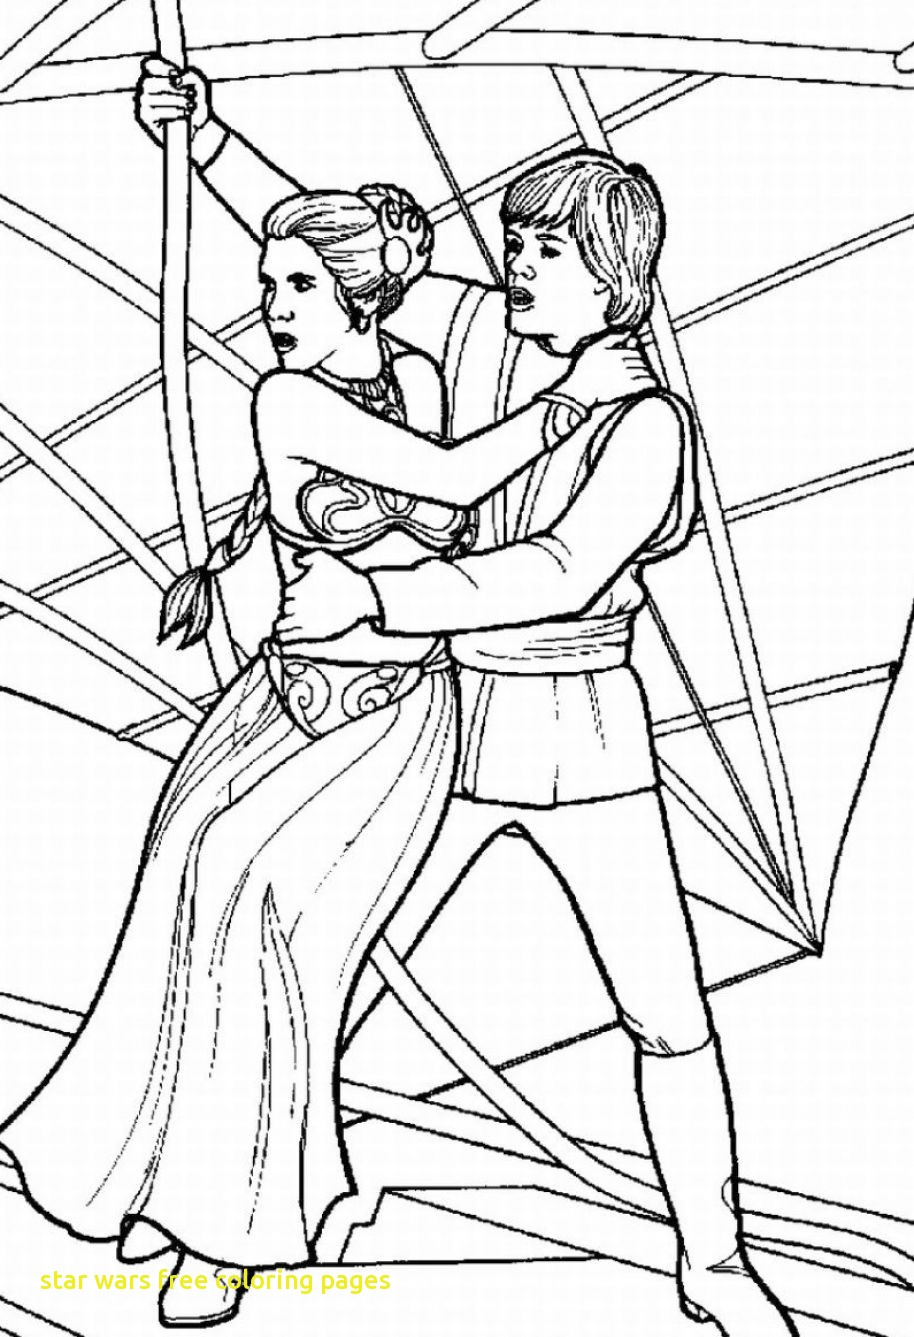 Star Wars Coloring Pages Free Printable and Capricus Download Of New Coloring Pages Star Wars Printable